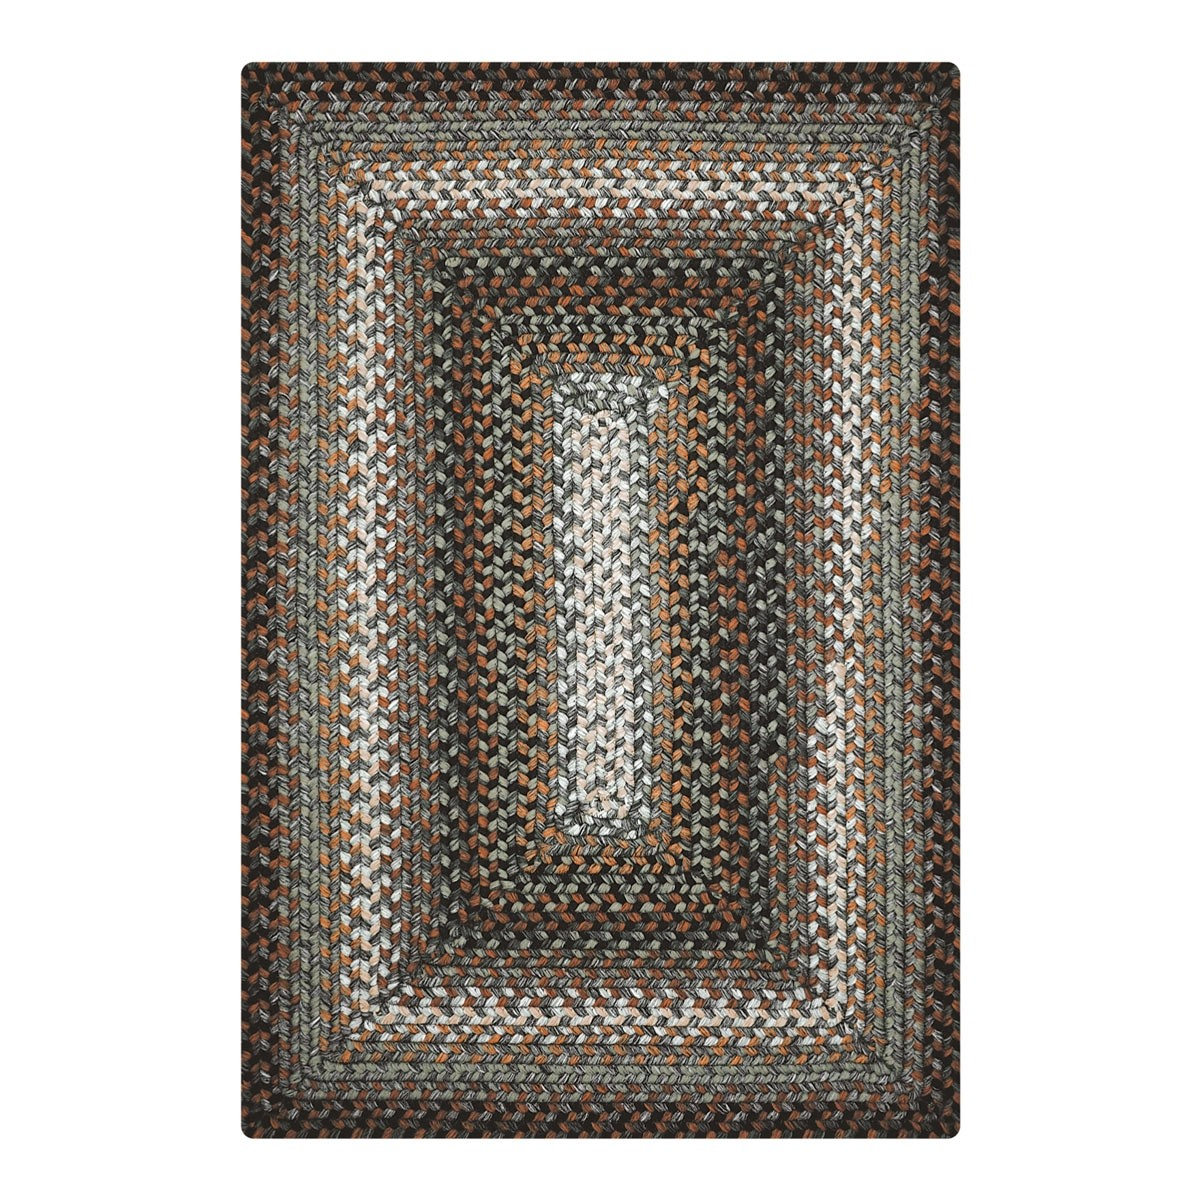 Buy Midnight Moon Brown Grey Ultra Durable Braided Rugs